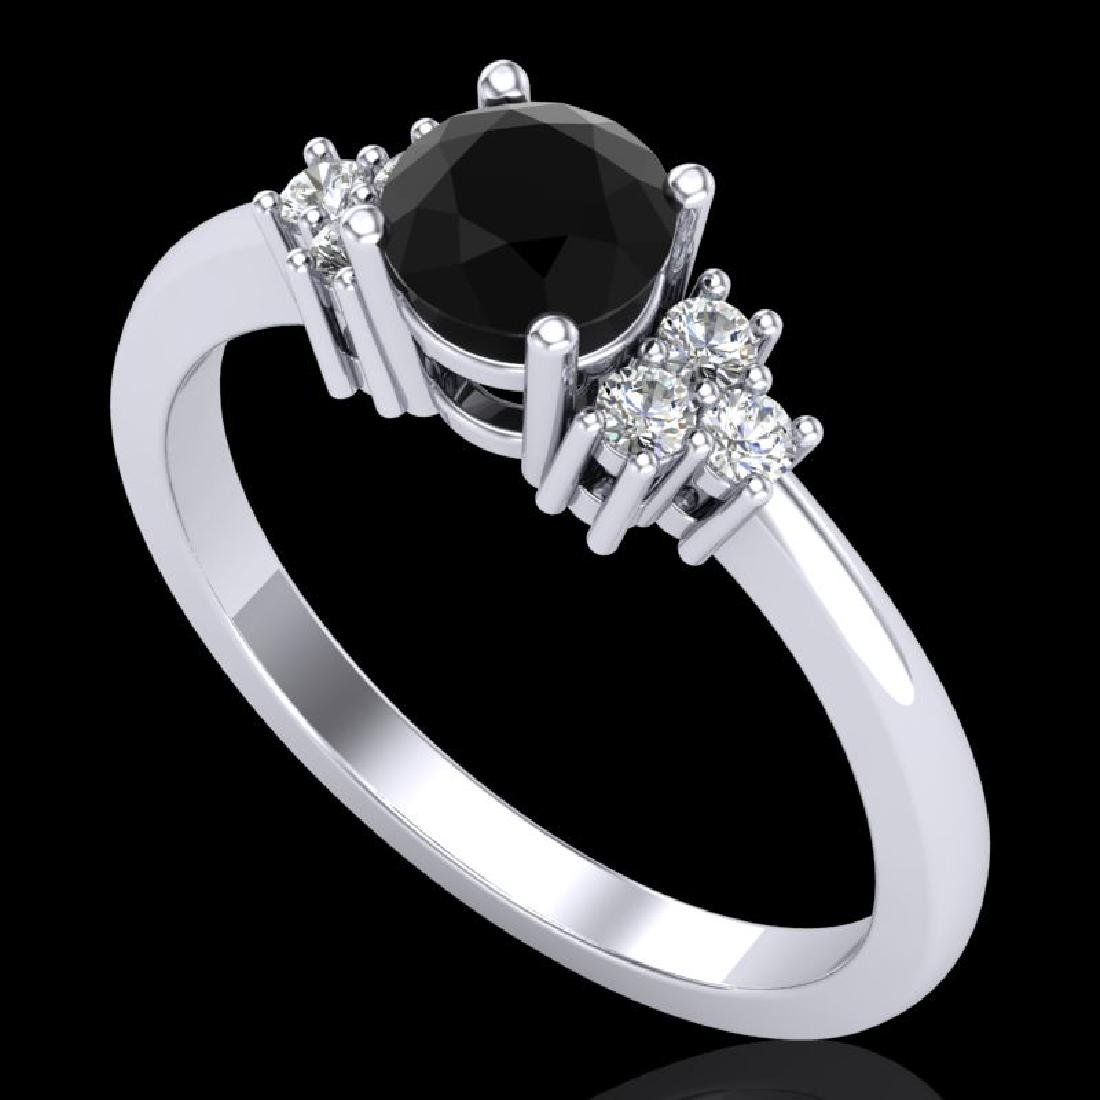 0.75 CTW Fancy Black Diamond Solitaire Engagement